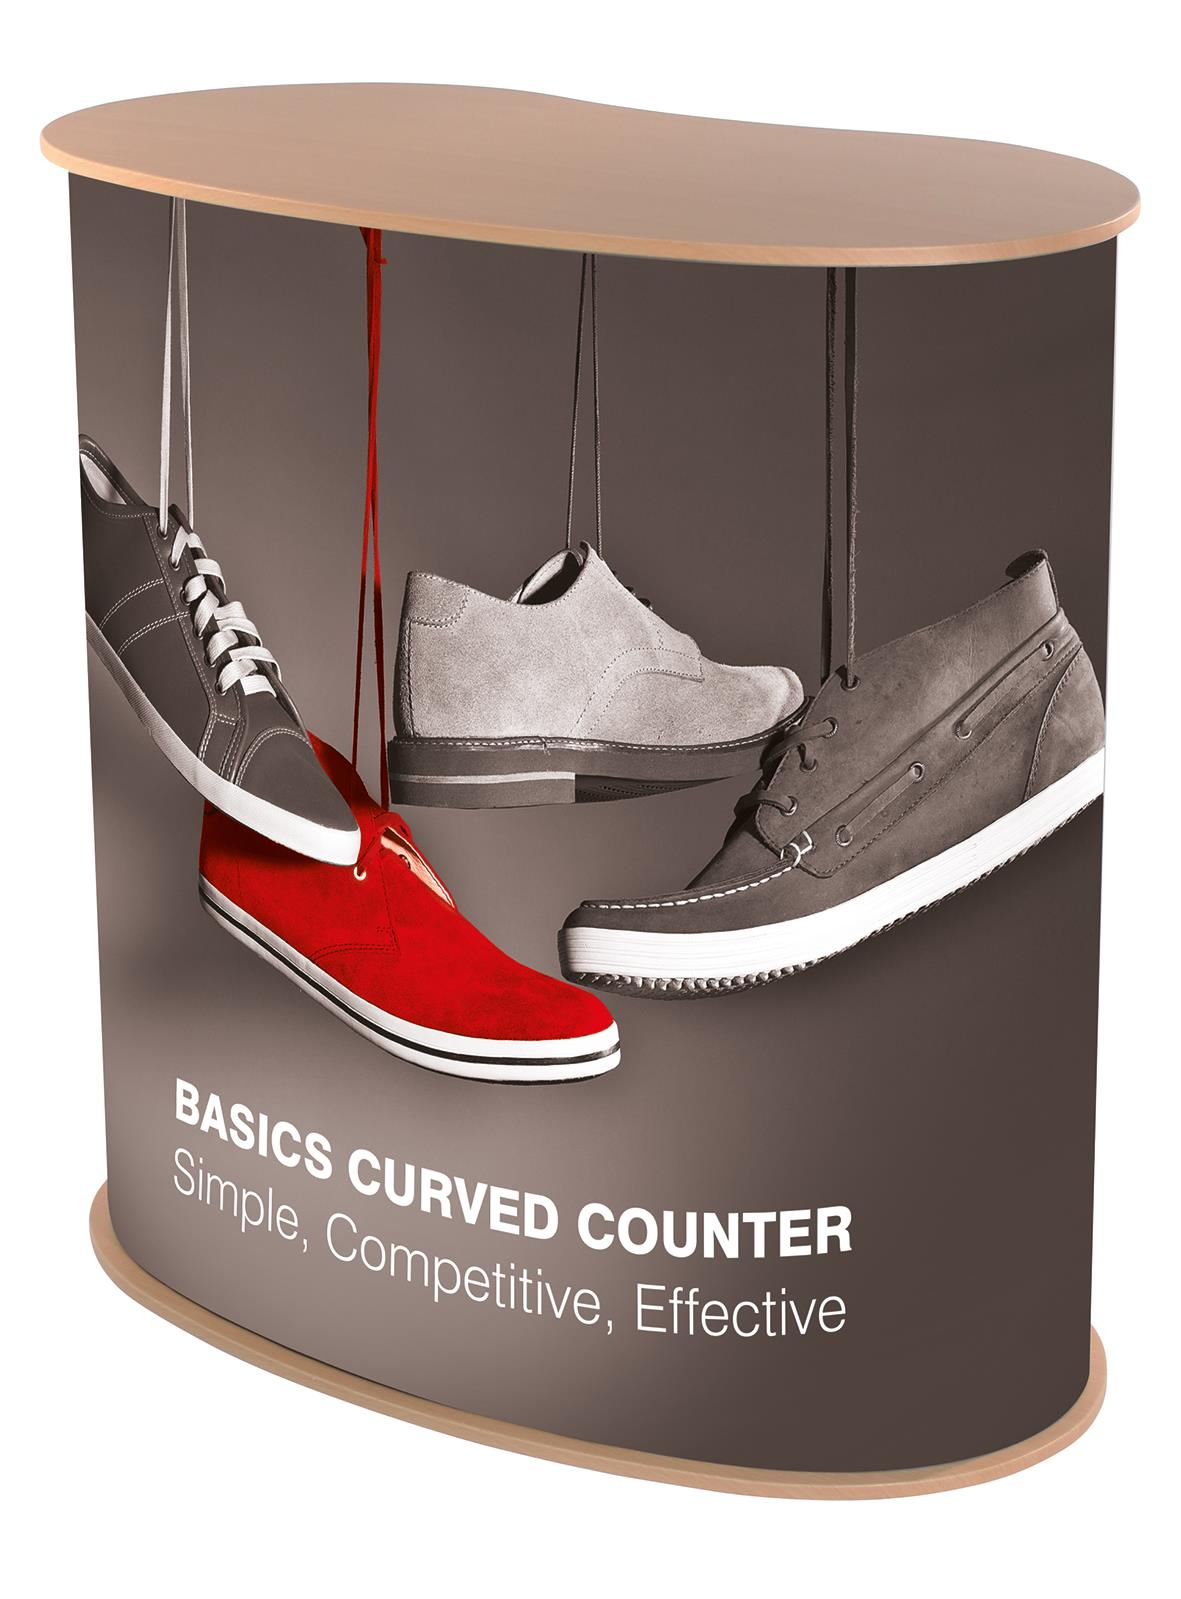 Exhibition Counter Hire From £19.99